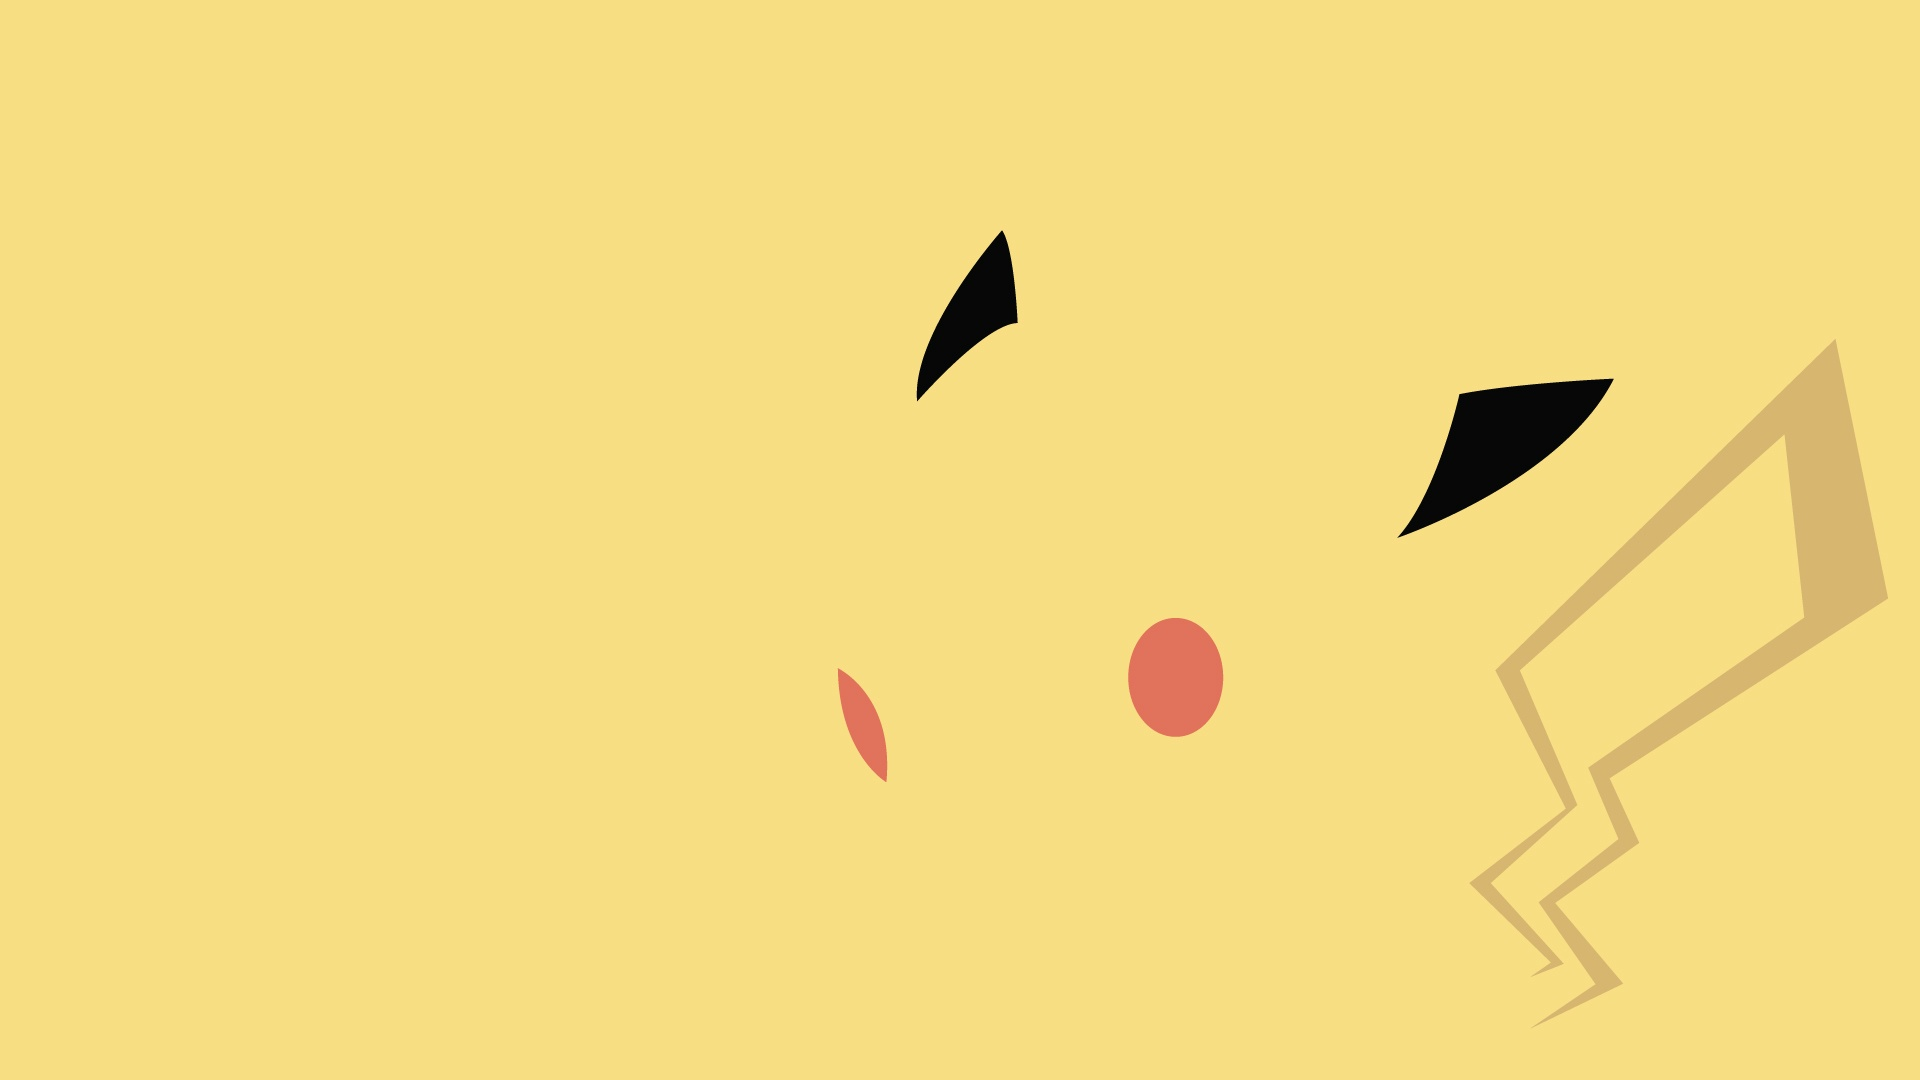 Abstract Pokemon Pikachu Exclusive HD Wallpapers 3101 1920x1080